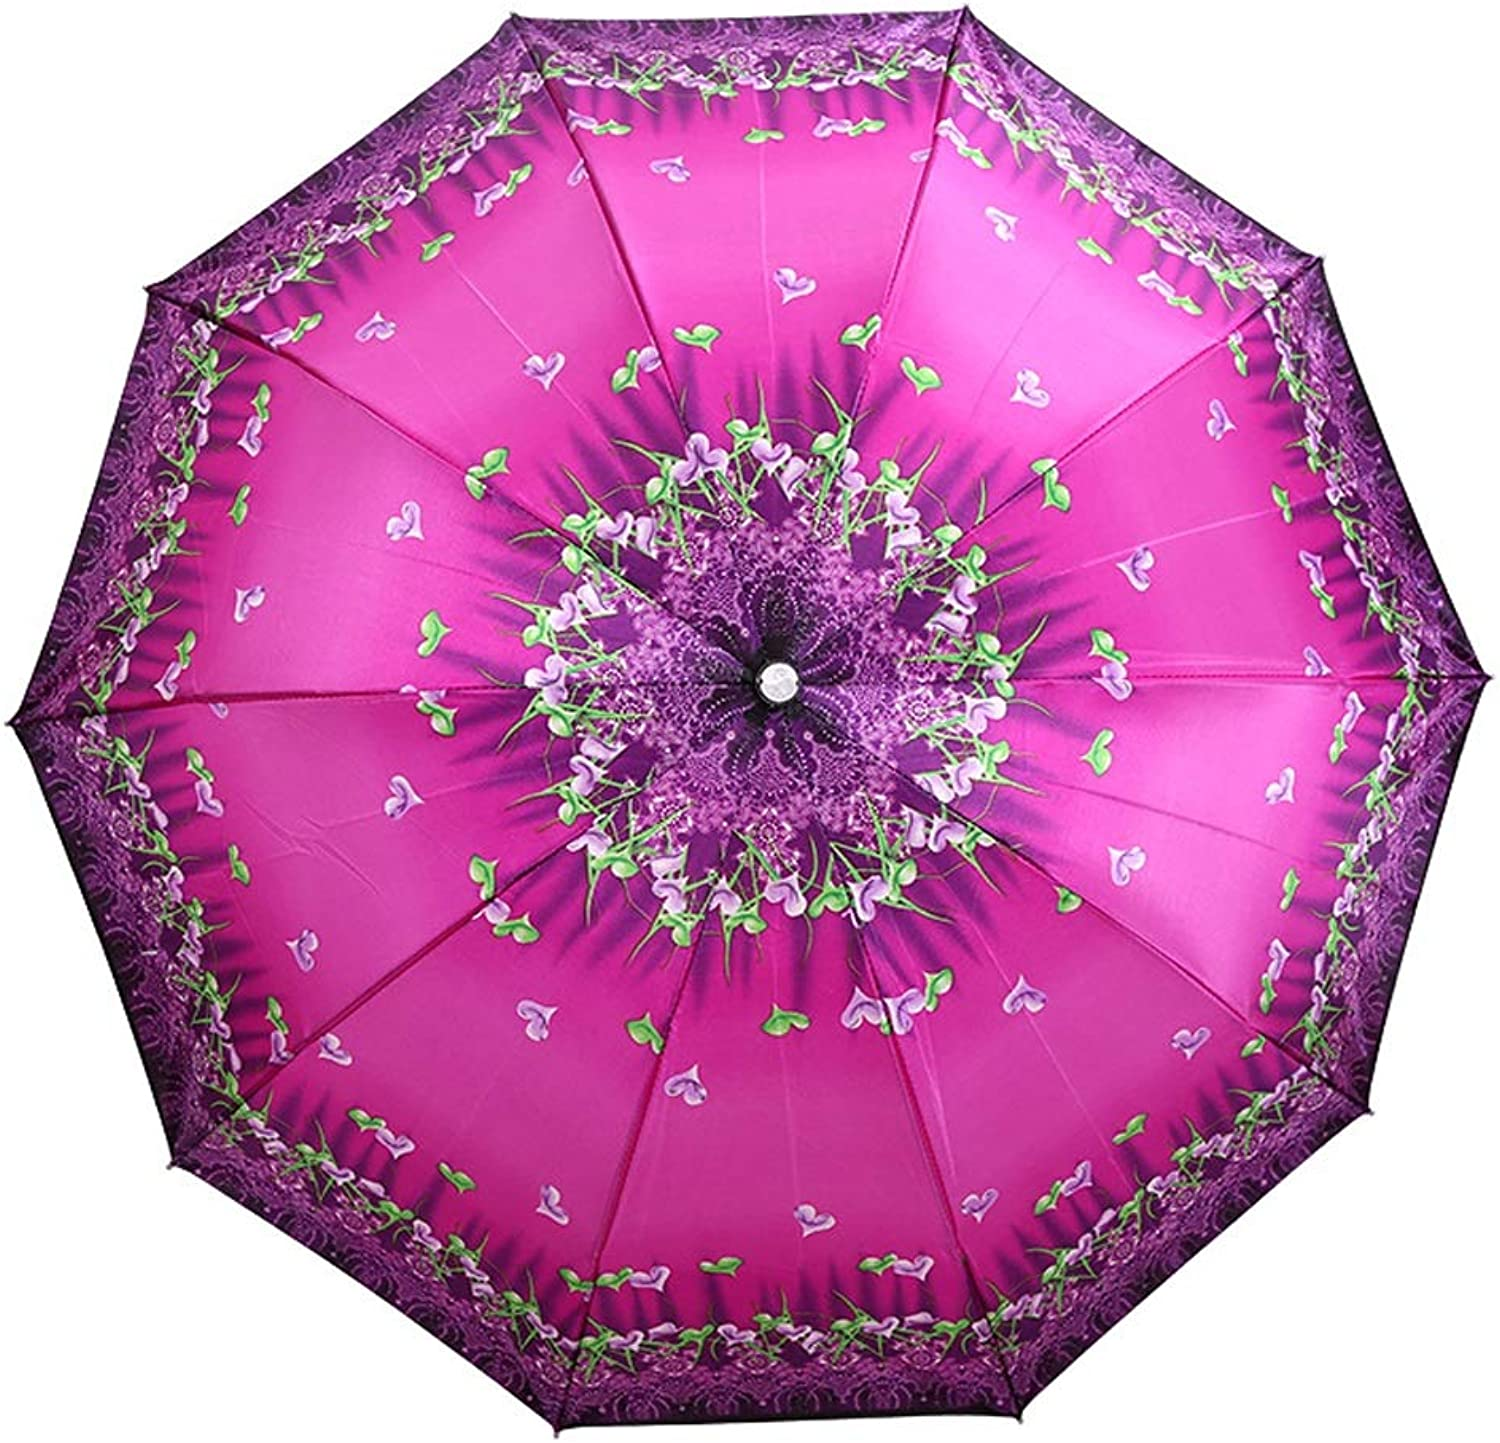 Travel Umbrella with 10 Reinforced Fiberglass Ribs Windproof Sun Block Rain (color   Purple, Size   Free)